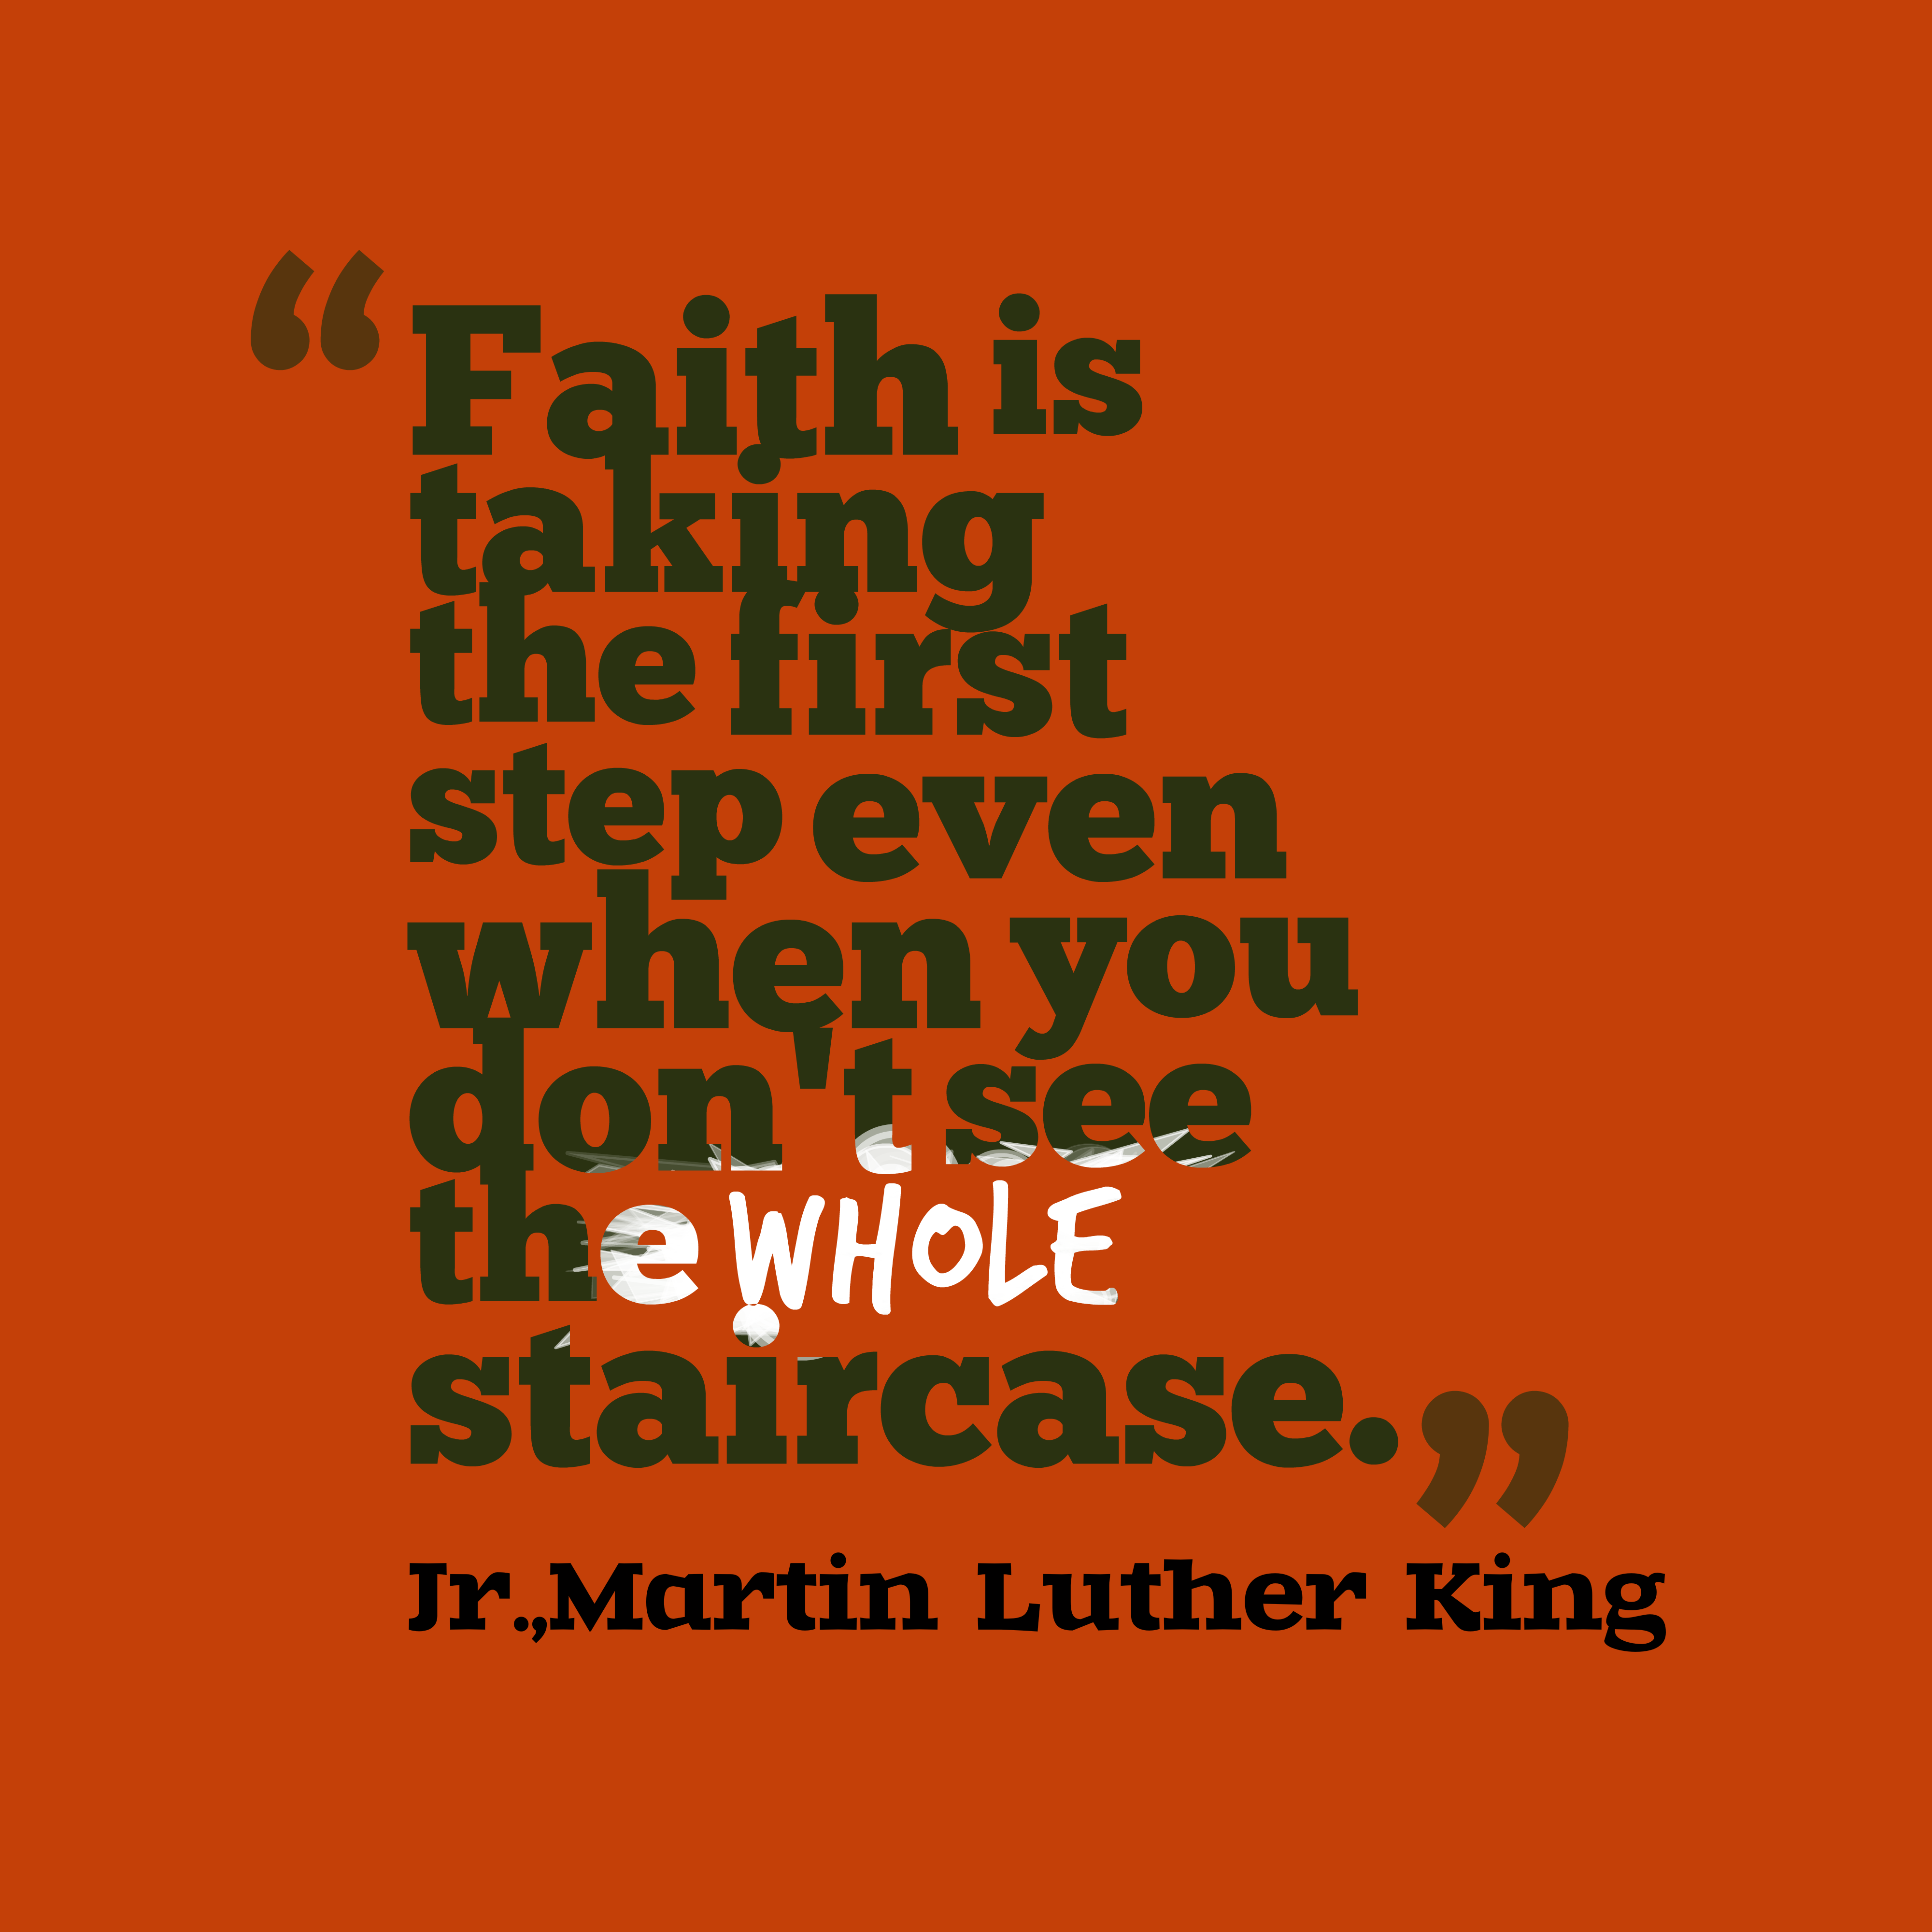 Martin Luther King Jr Quote About Faith